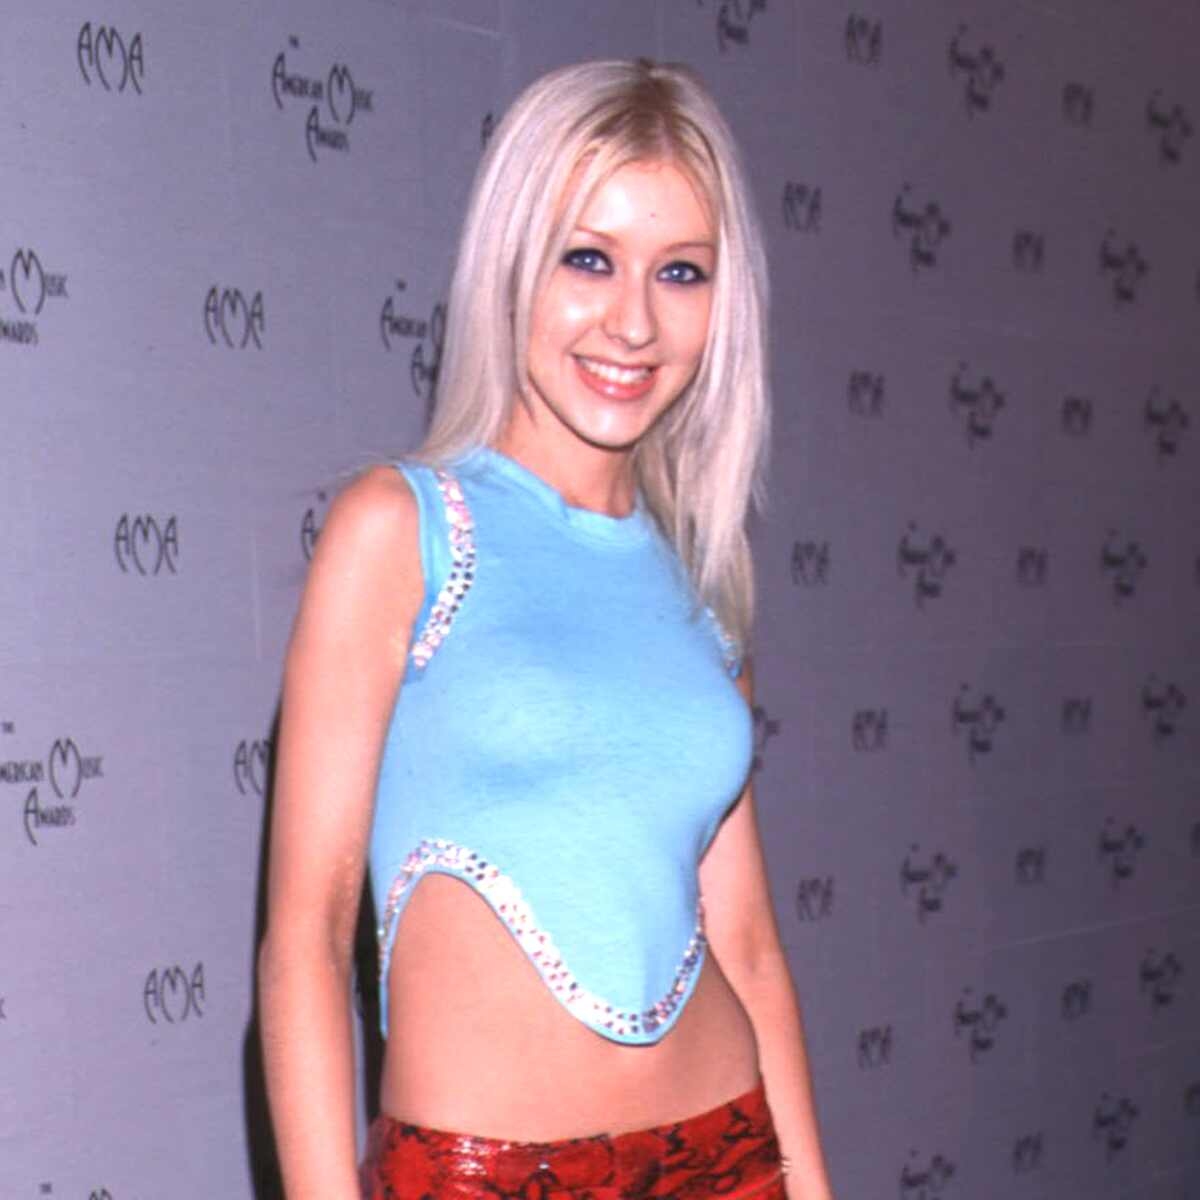 Best Fashion Moments from the 2000 American Music Awards, Christina Aguilera